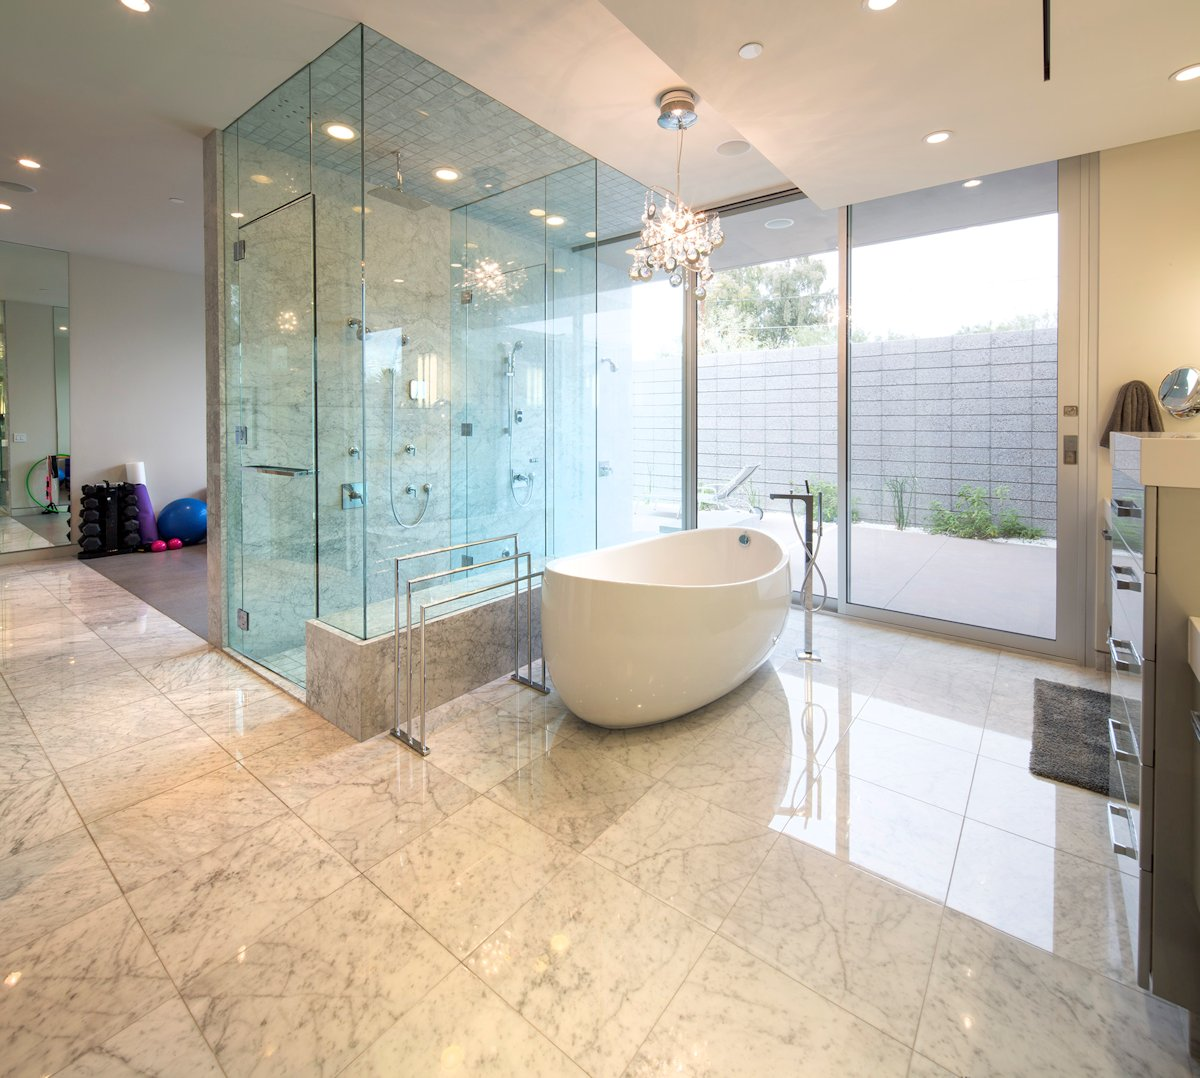 New Home Designs Latest Modern Homes Modern Bathrooms: Glass Shower, Modern Bathroom, Mid-Century Modern Home In